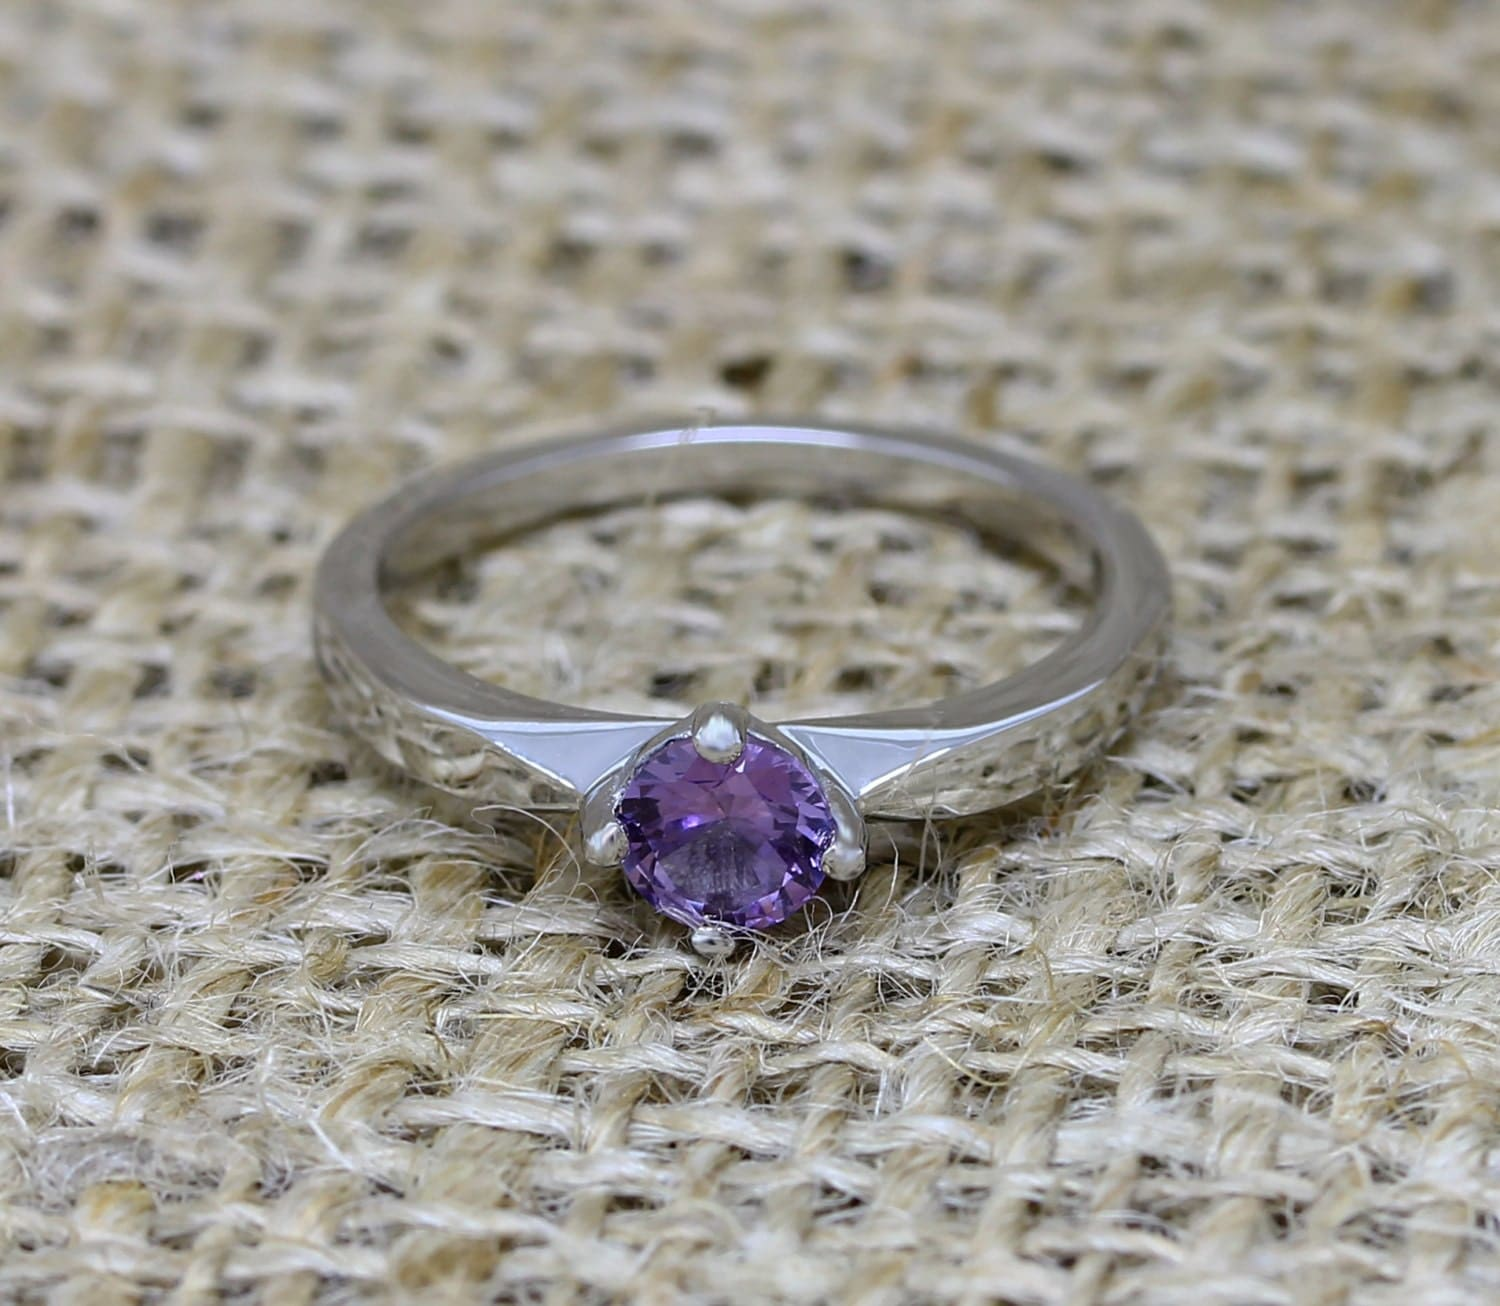 alexandrite ring alexandrite wedding band Alexandrite and Titanium solitaire ring engagement ring wedding ring